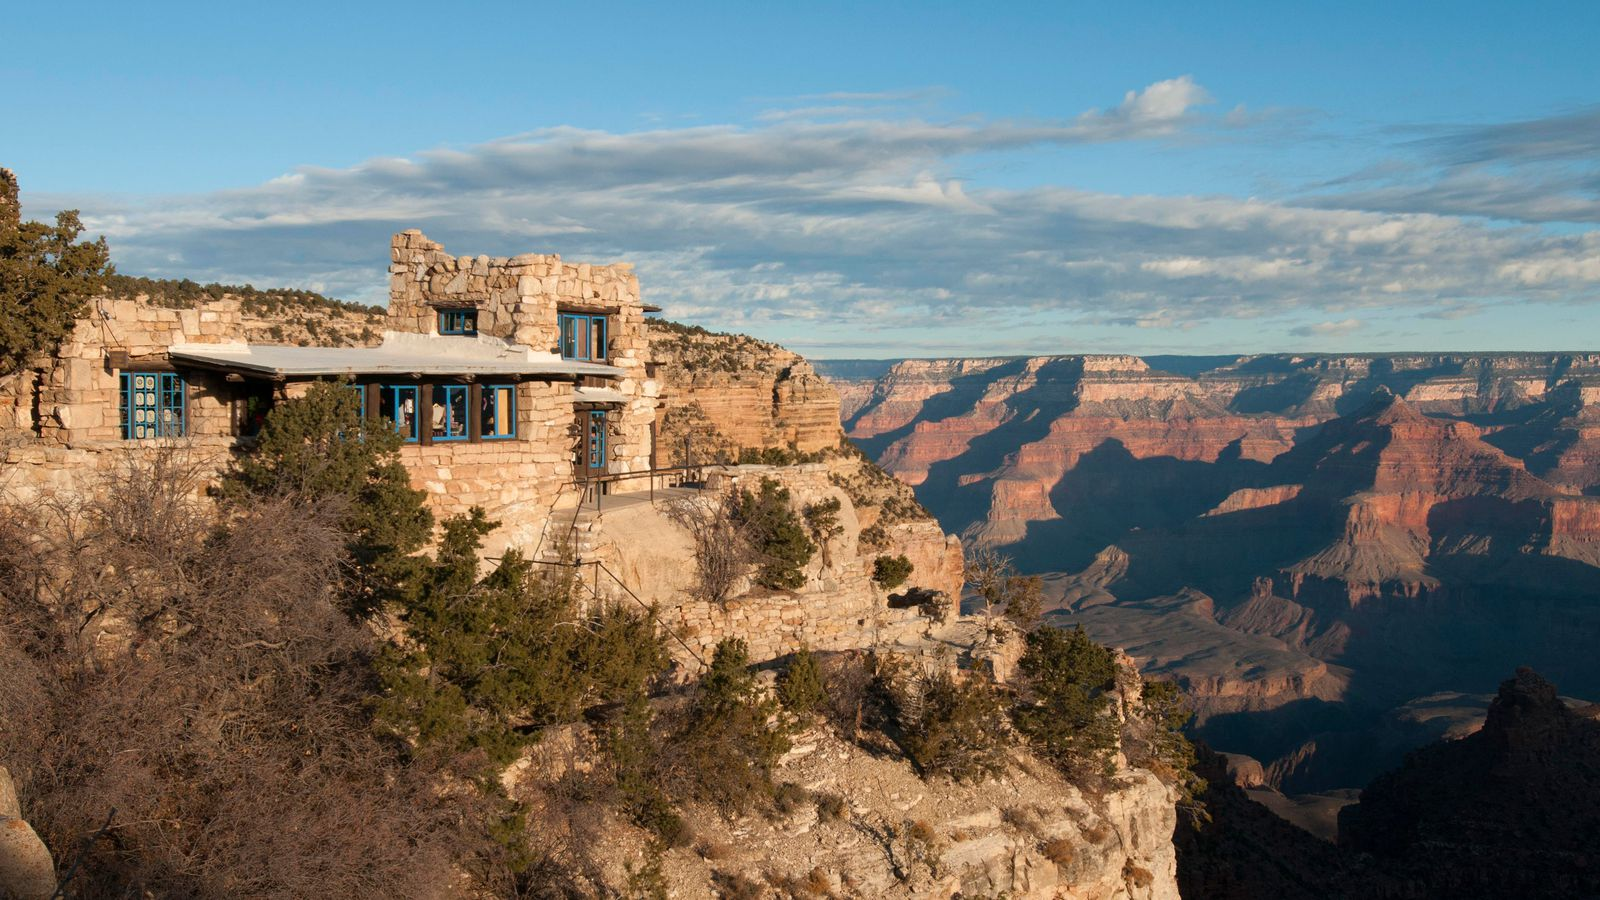 grand canyon catholic single women Ca california the following retreats are located in california (ca), usa retreats may take place in sonoma valley, joshua tree, the wine country, marin county,.